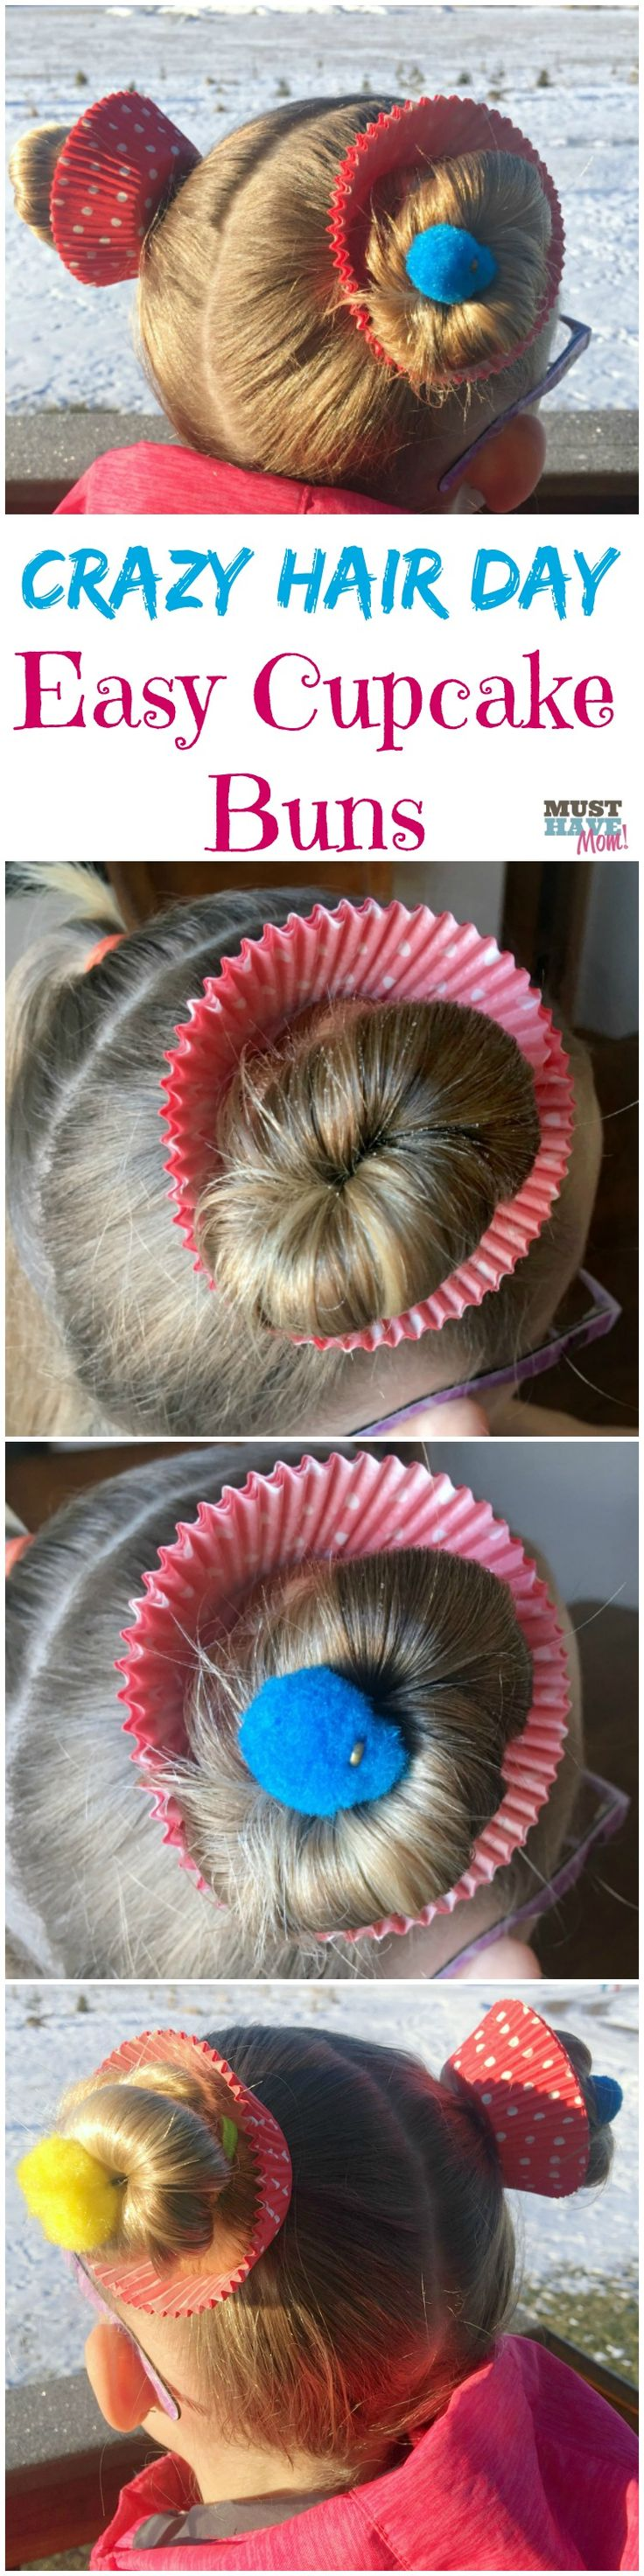 best crazy hair day images on pinterest